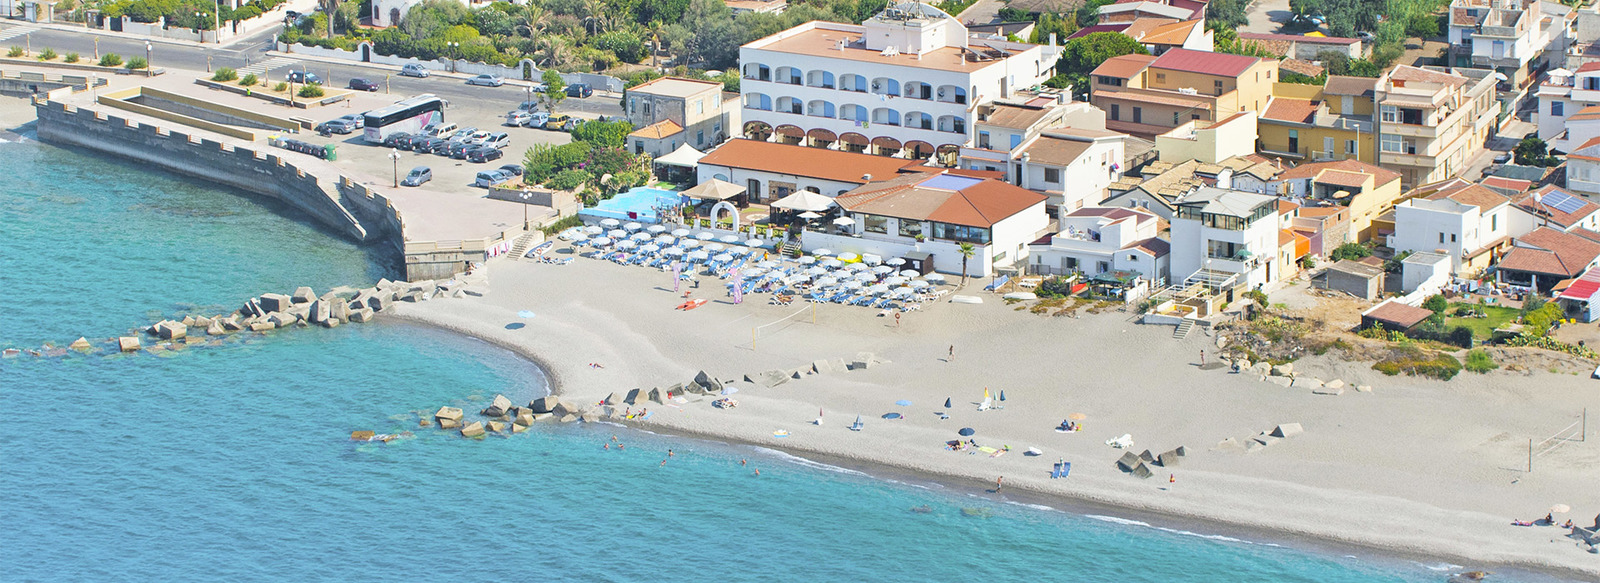 hotel 3* in una location suggestiva